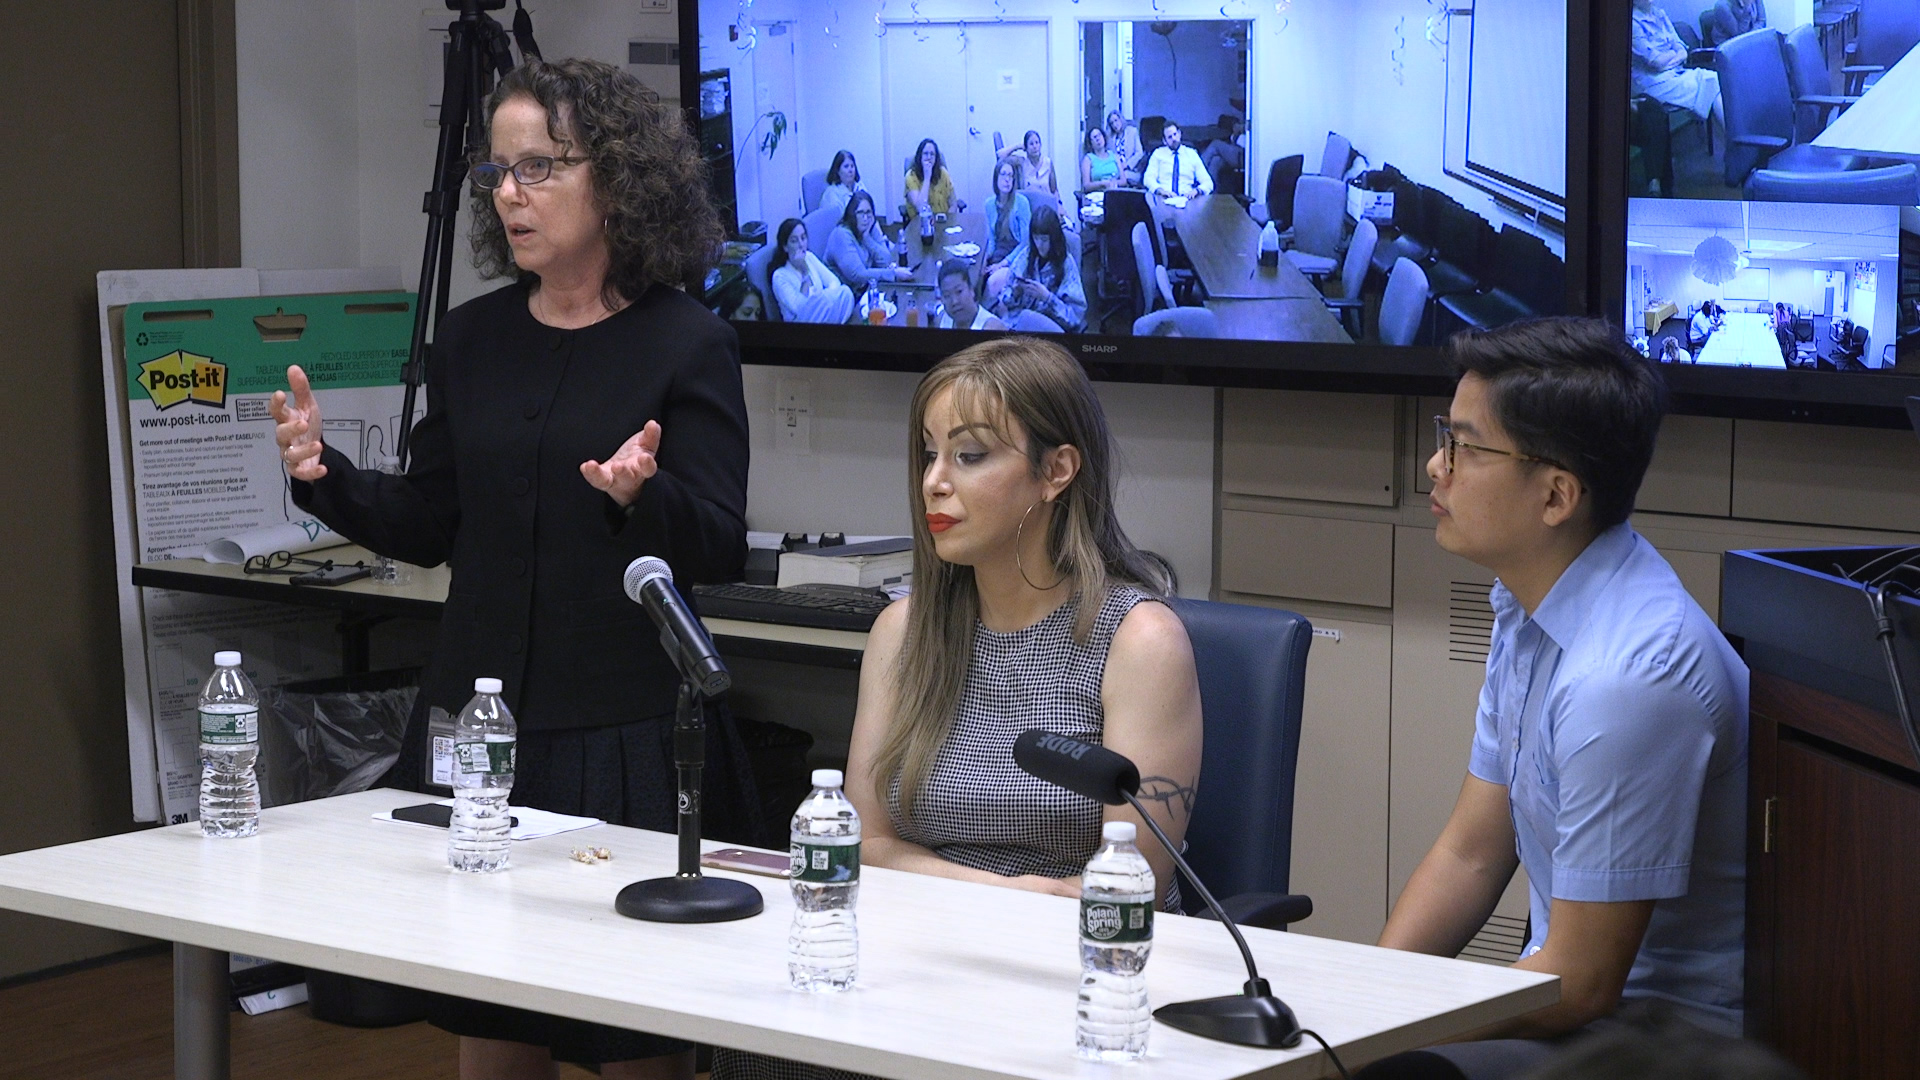 Commemorating the 50th Anniversary of Stonewall, (pictured left to right) is Janet Sabel, Attorney-in-Chief, Stefanie Rivera of The Sylvia Rivera Law Project, and Jason Wu, a Staff Attorney from the Civil Practice.